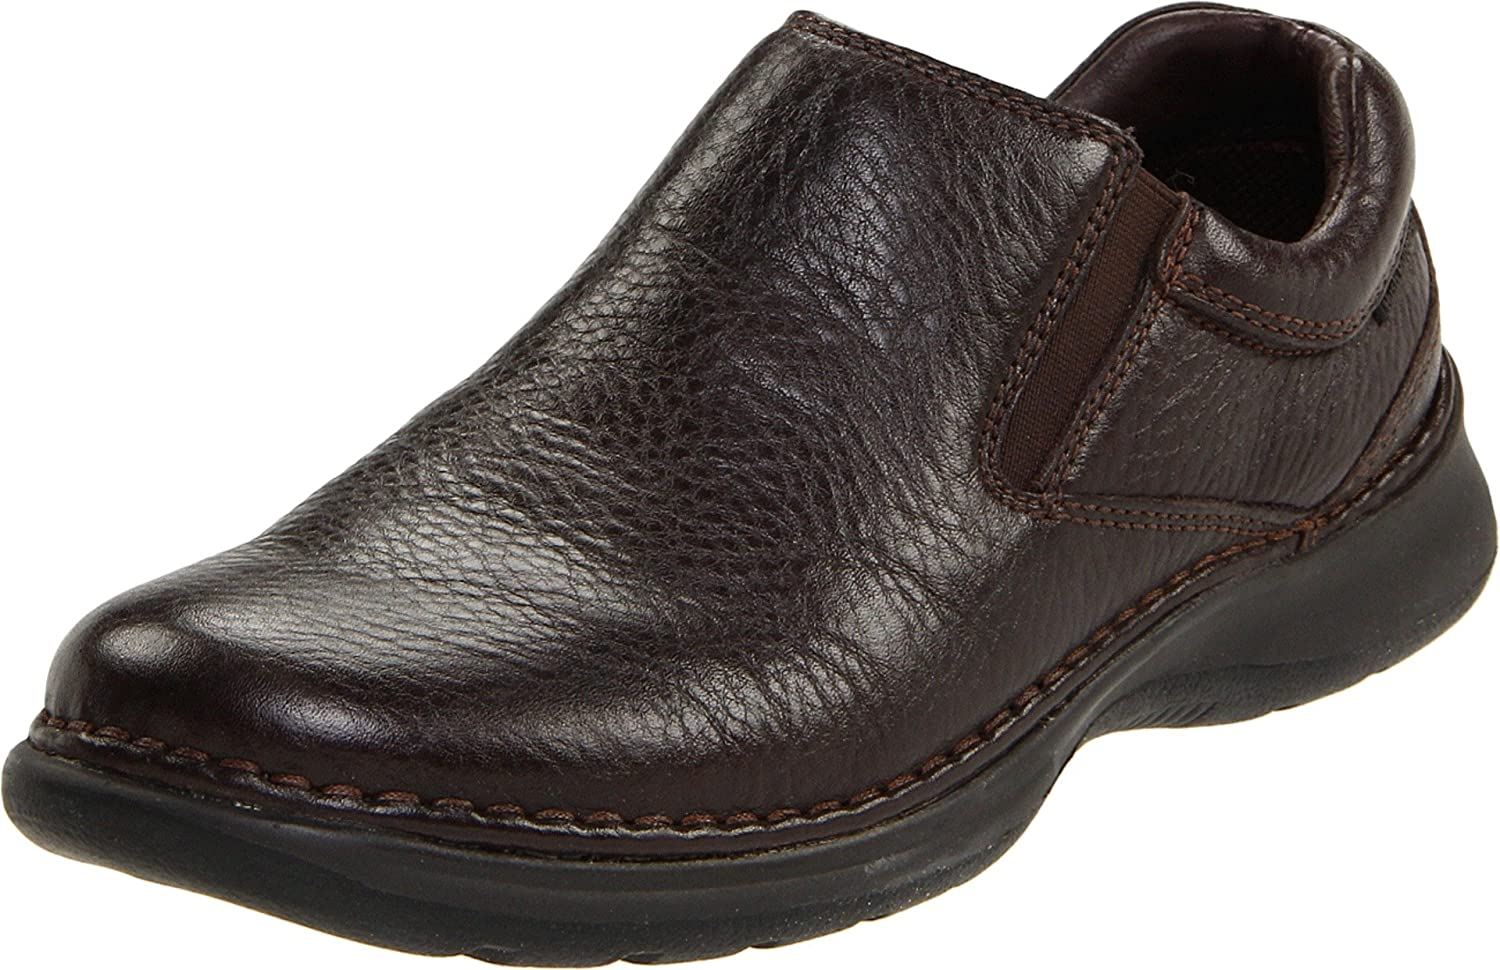 Hush Puppies Men's Lunar II Slip-On,Dark Marronee,10.5 W US